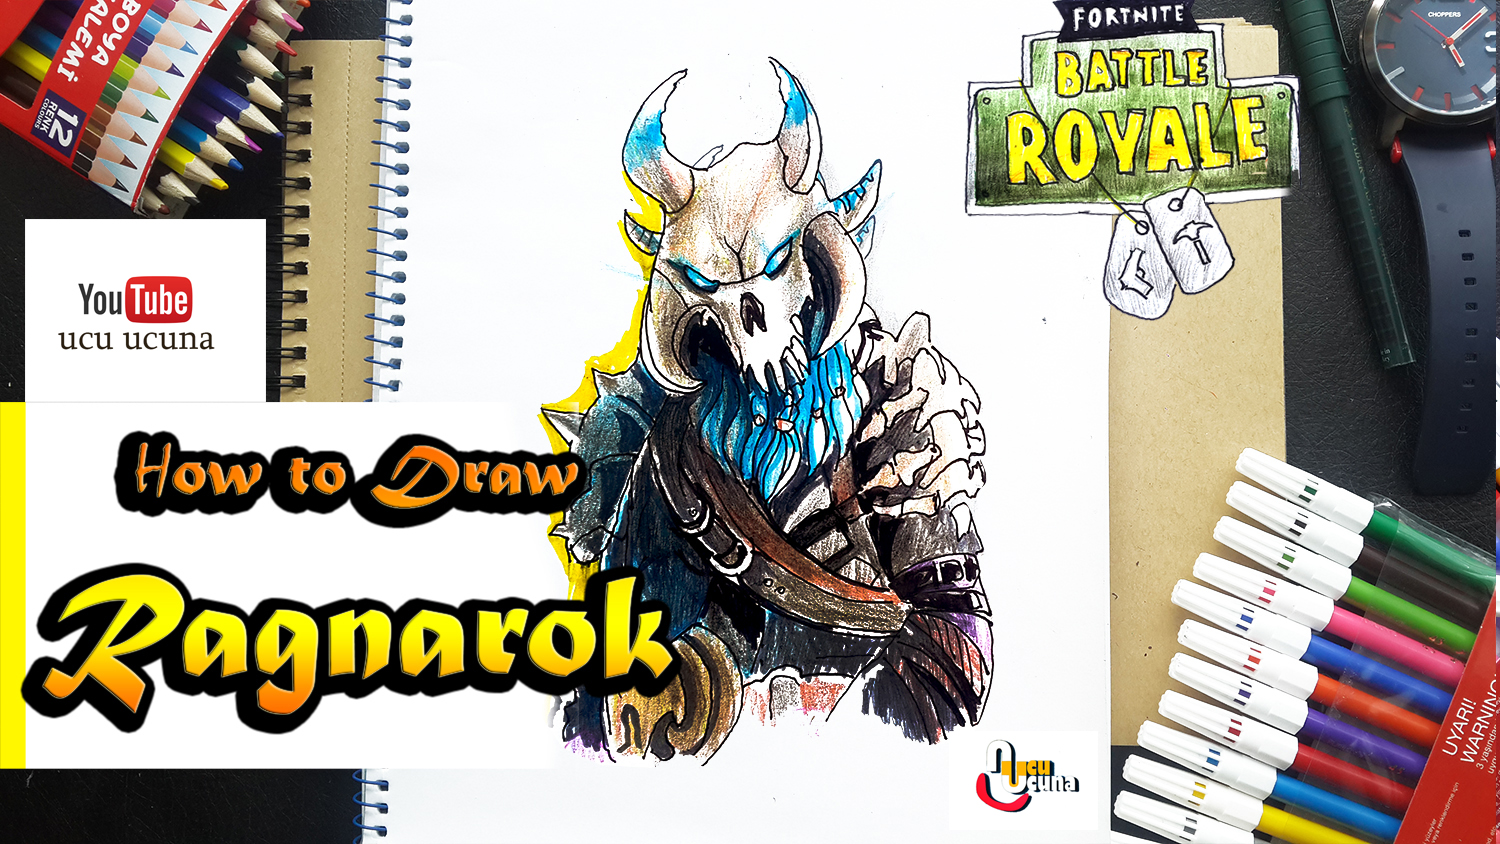 How to draw drift tutorial youtube channel name is ucu ucuna learn how to draw ragnarok fully upragaded from fortnite step by step beginner drawing tutorial of the ragnarok skin from fortnite